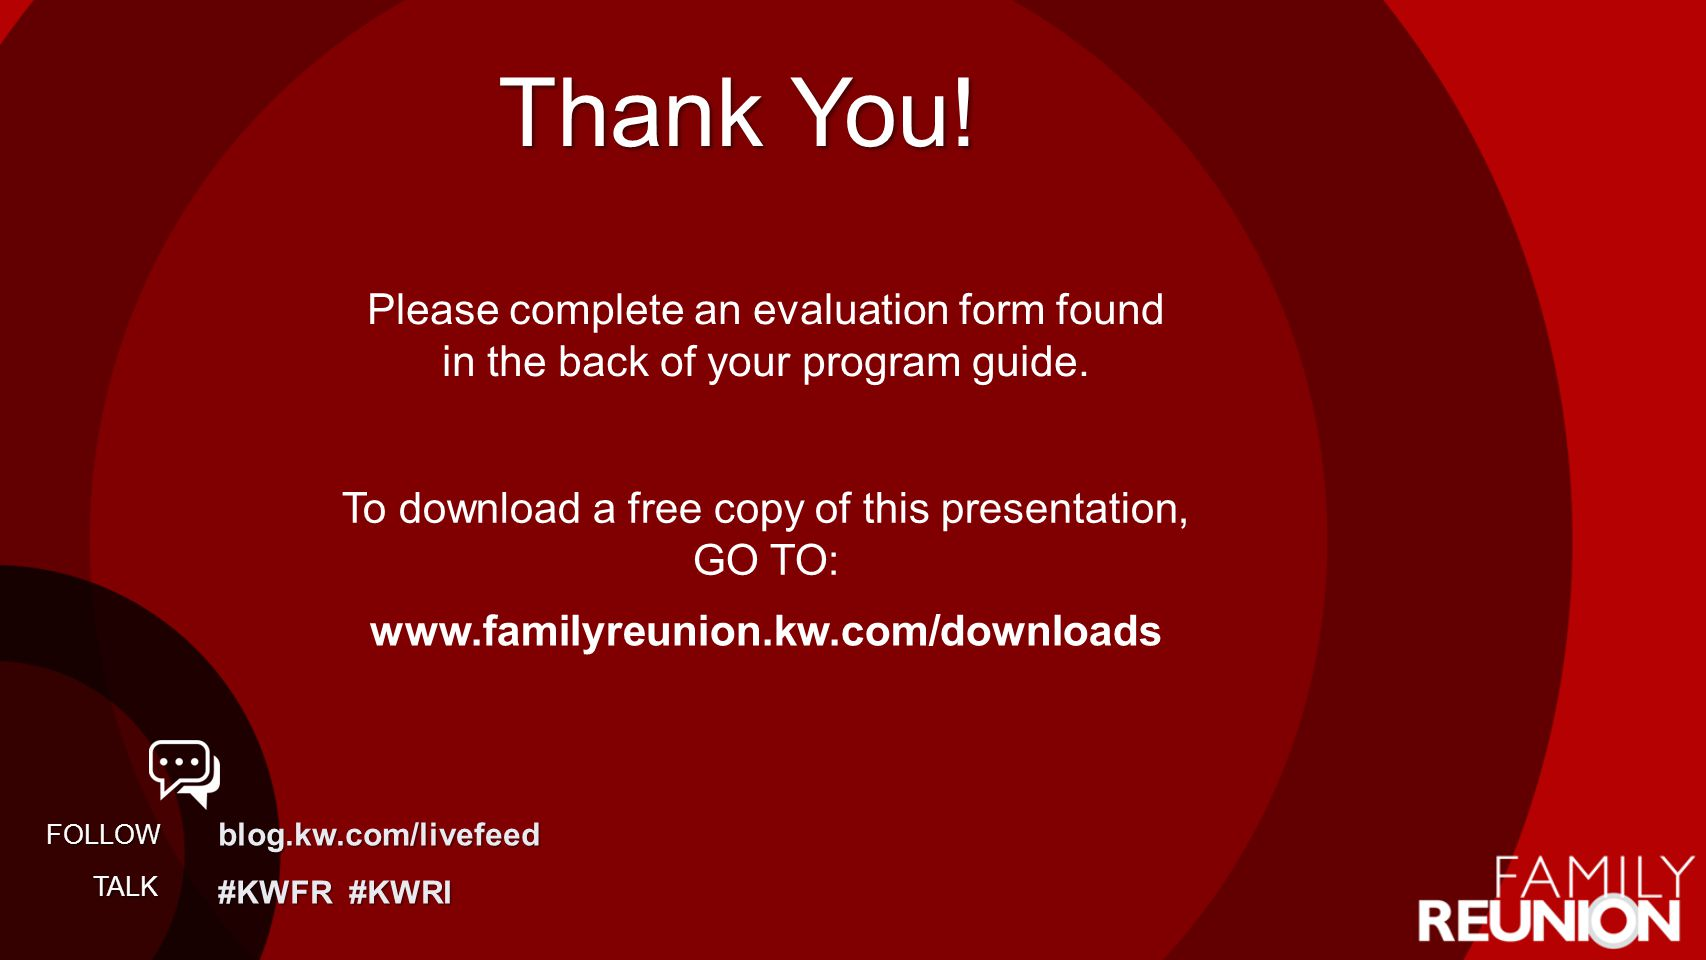 blog.kw.com/livefeed #KWFR #KWRI FOLLOW TALK Thank You! Please complete an evaluation form found in the back of your program guide. To download a free